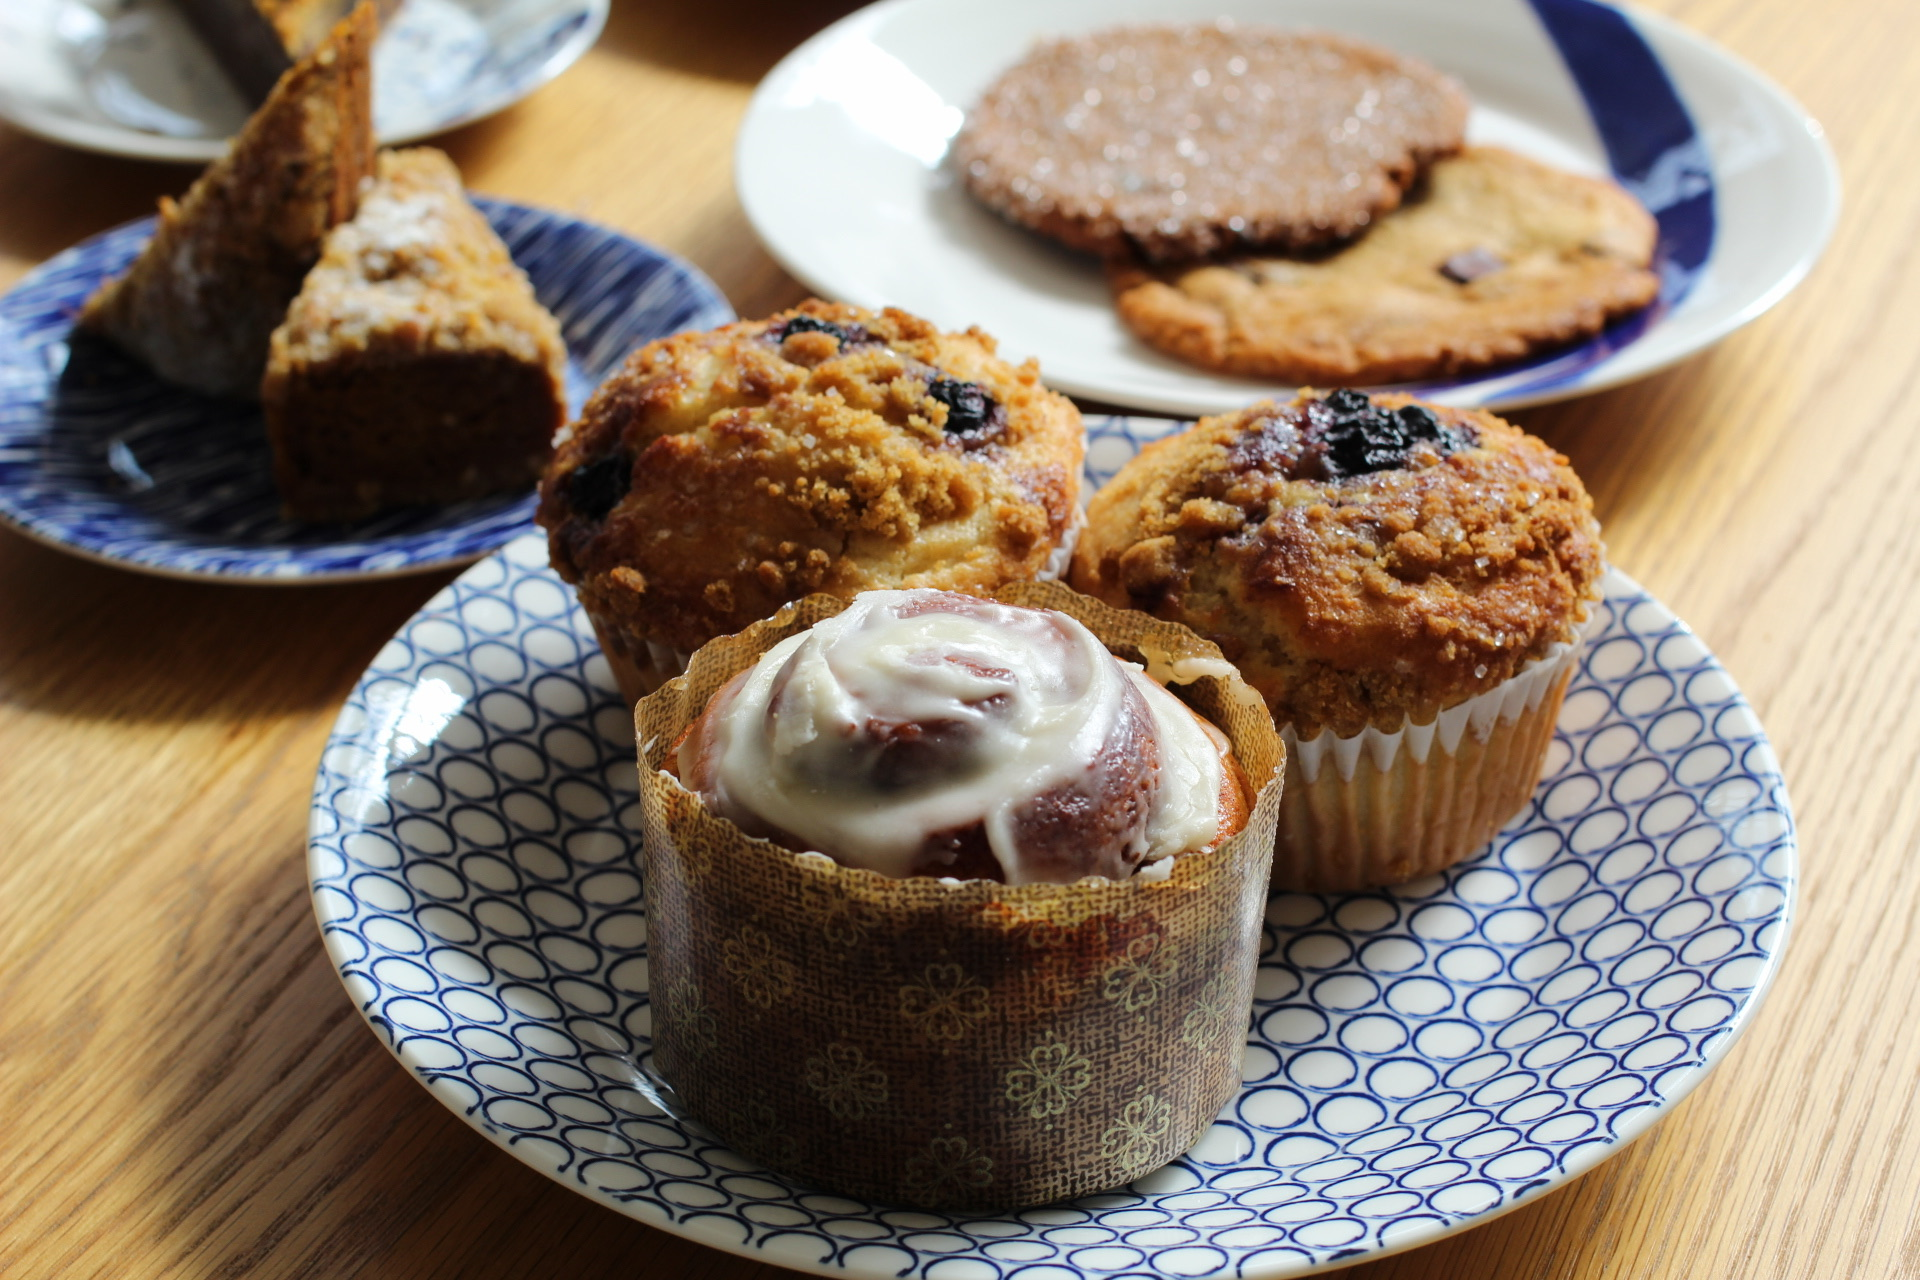 cinnamon rolls, muffins, and cookies at Valhalla bakery, located at 1113 Central Avenue inside Baum Avenue Market in Downtown St Pete